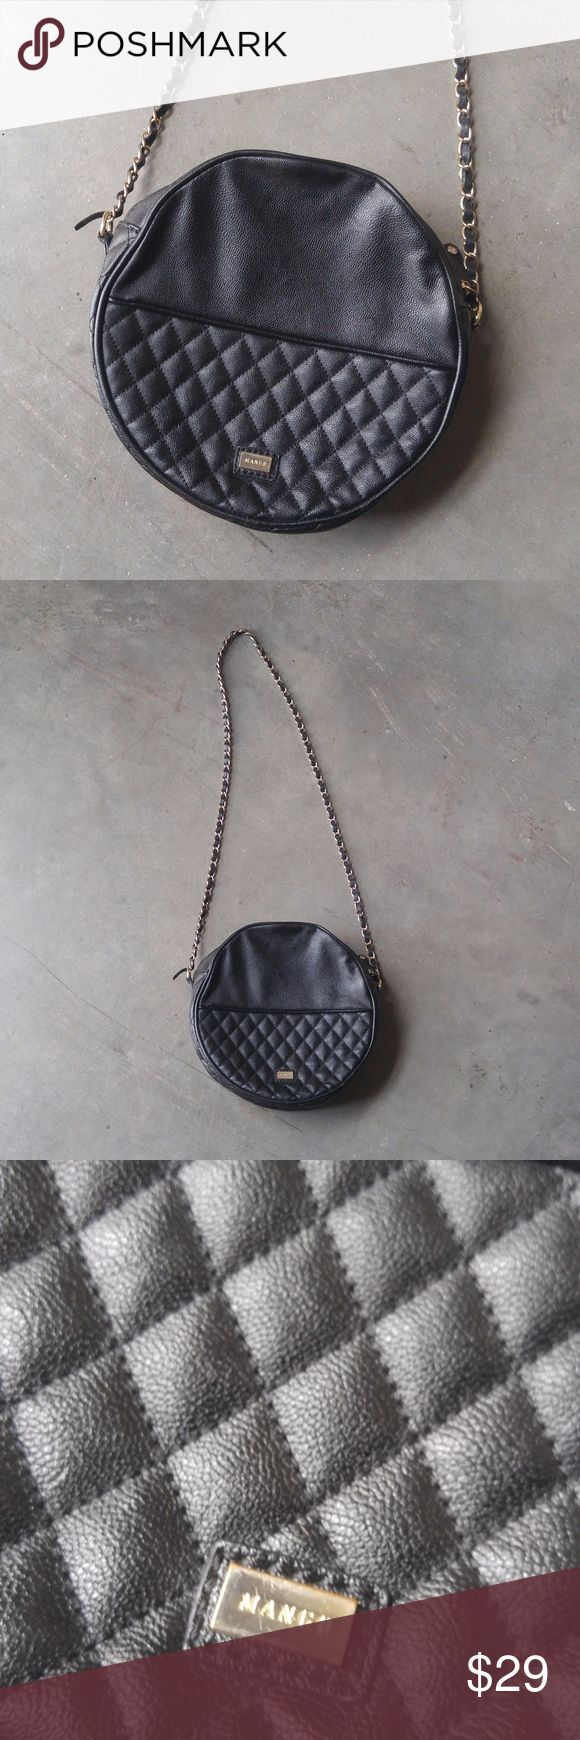 Mango Black Quilted Round Circle Bag Mango brand crossbody bag in excellent condition! Only flaw is the end of the black piece that is weaved through the chain strap needs to be glued back down. Black faux leather material with quilted bottom half on both front and back. A very unique statement piece! Smoke free, pet friendly home. No trades. No modeling. Make a reasonable offer. Thanks! Mango Bags Crossbody Bags